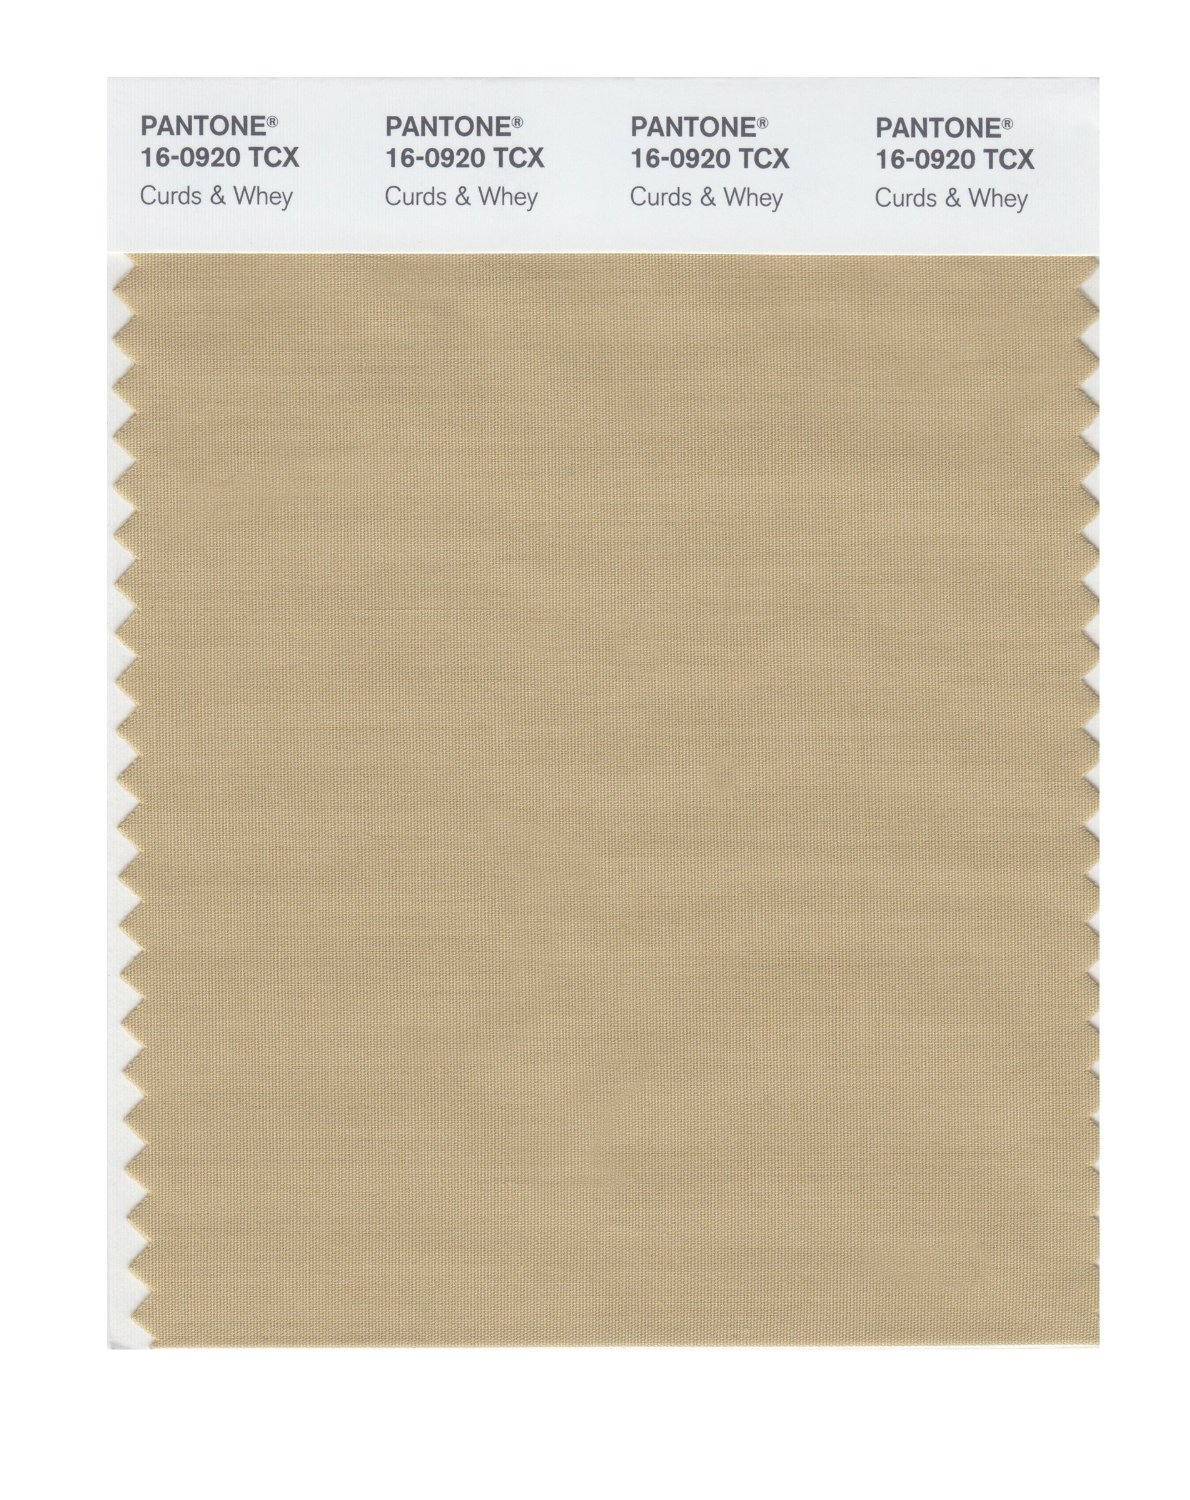 Pantone Smart Swatch 16-0920 Curds & Whey